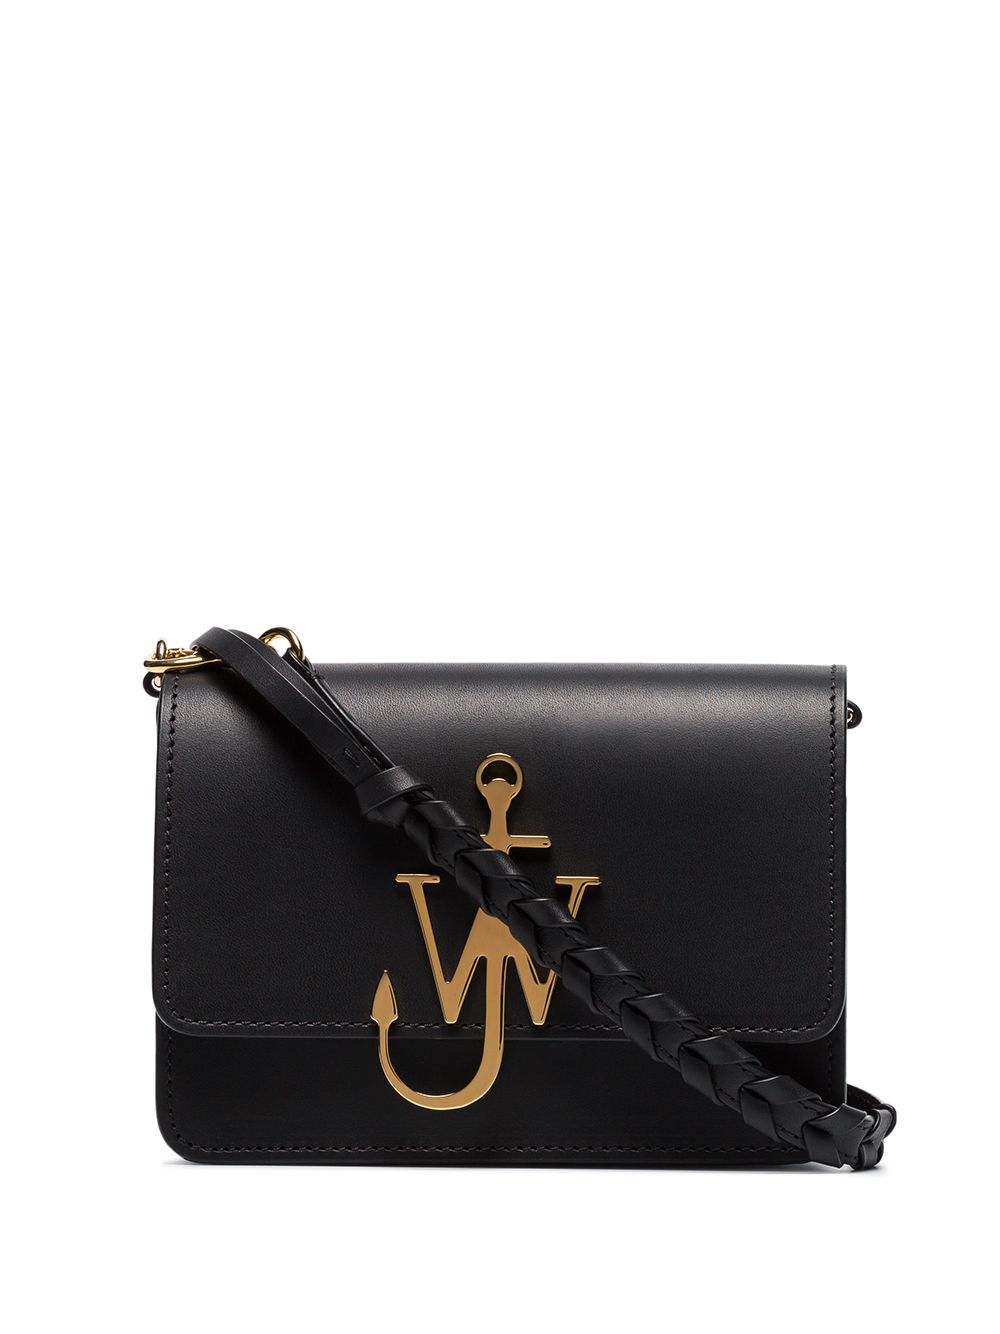 JW ANDERSON WOMEN ANCHOR LOGO BAG WITH BRAIDED STRAP